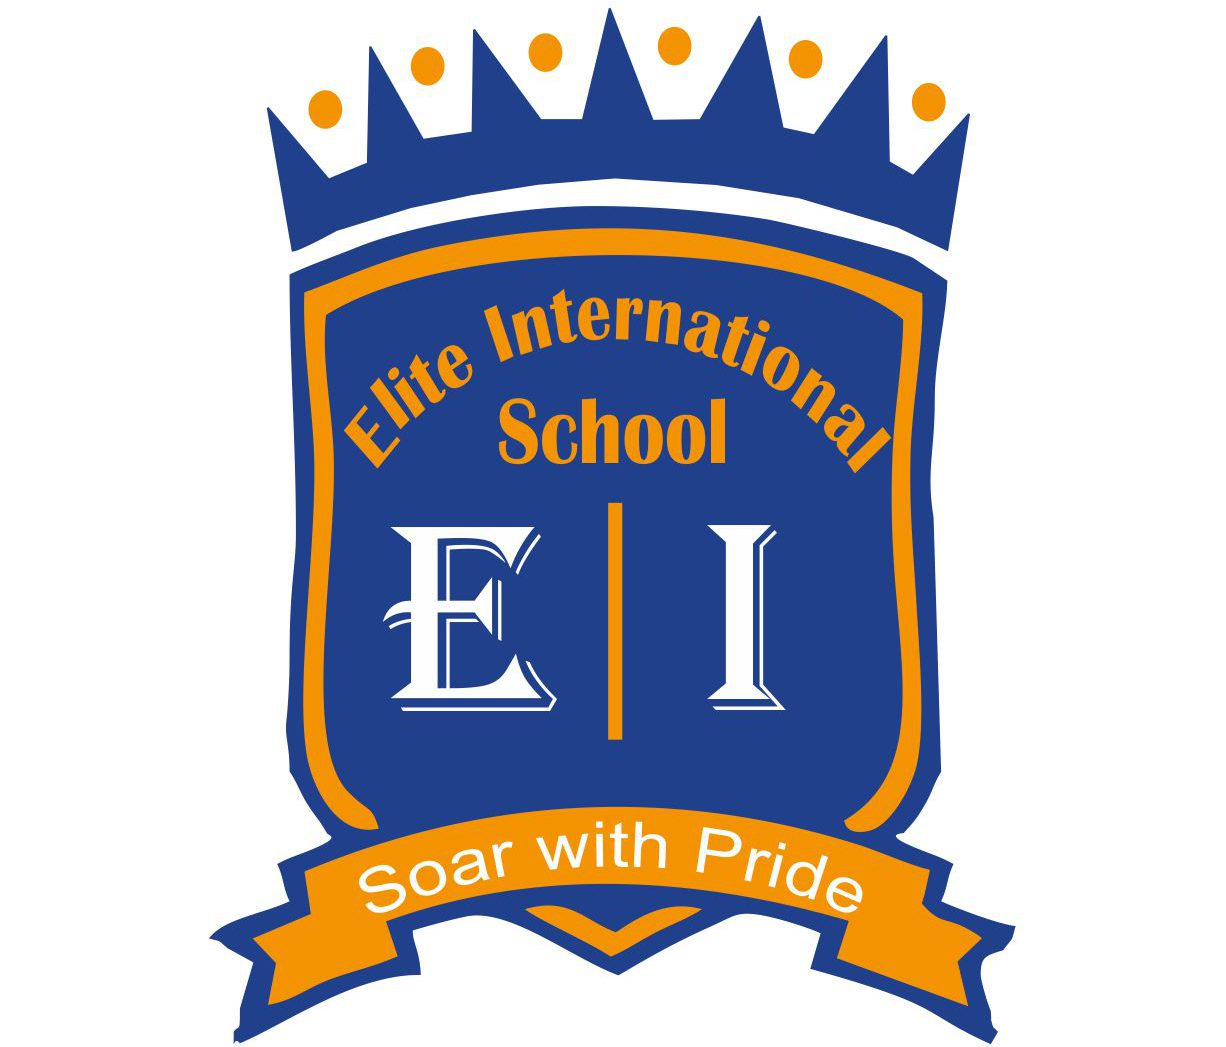 Elite International School